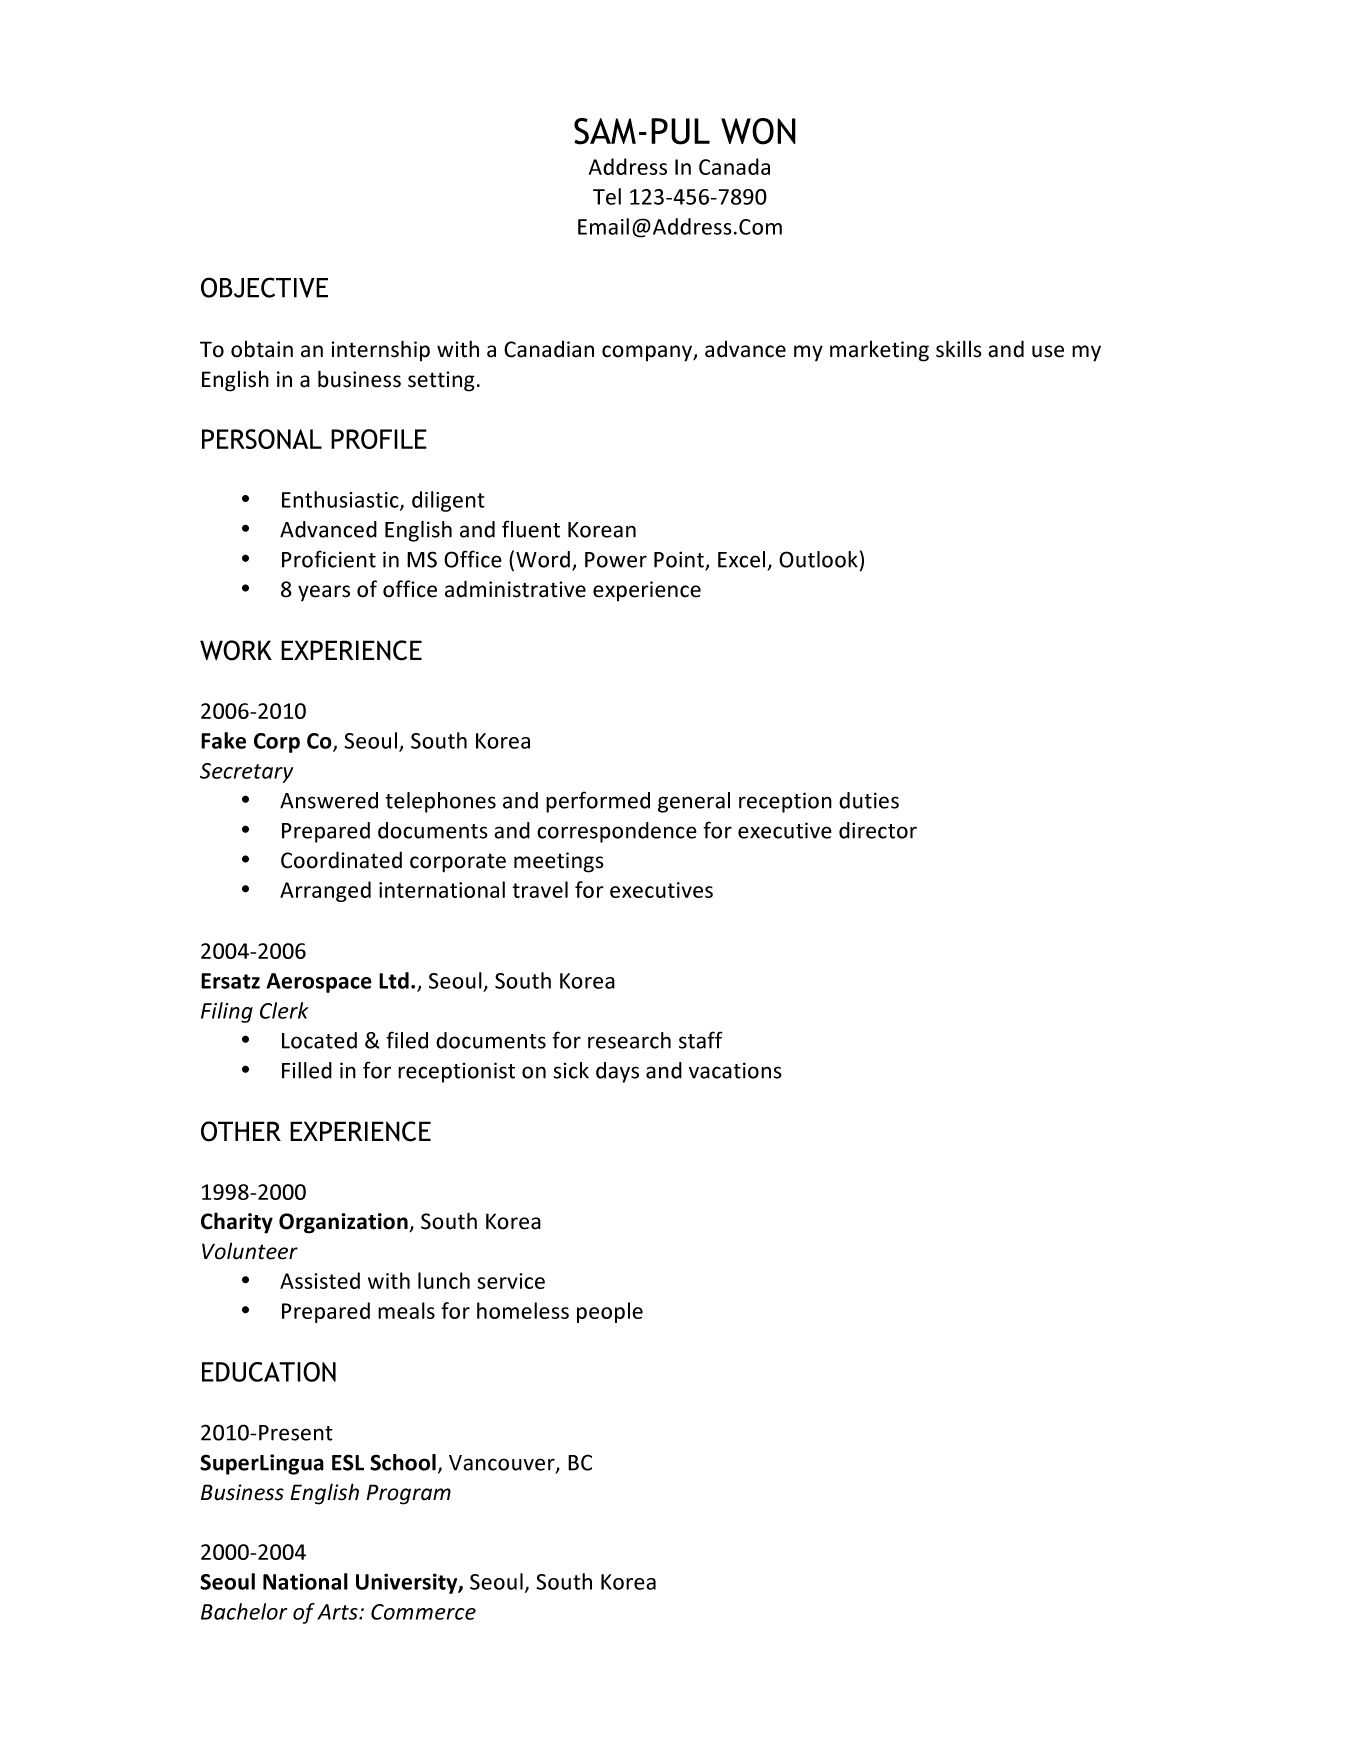 How To Prepare Resume - http://topresume.info/how-to-prepare-resume ...